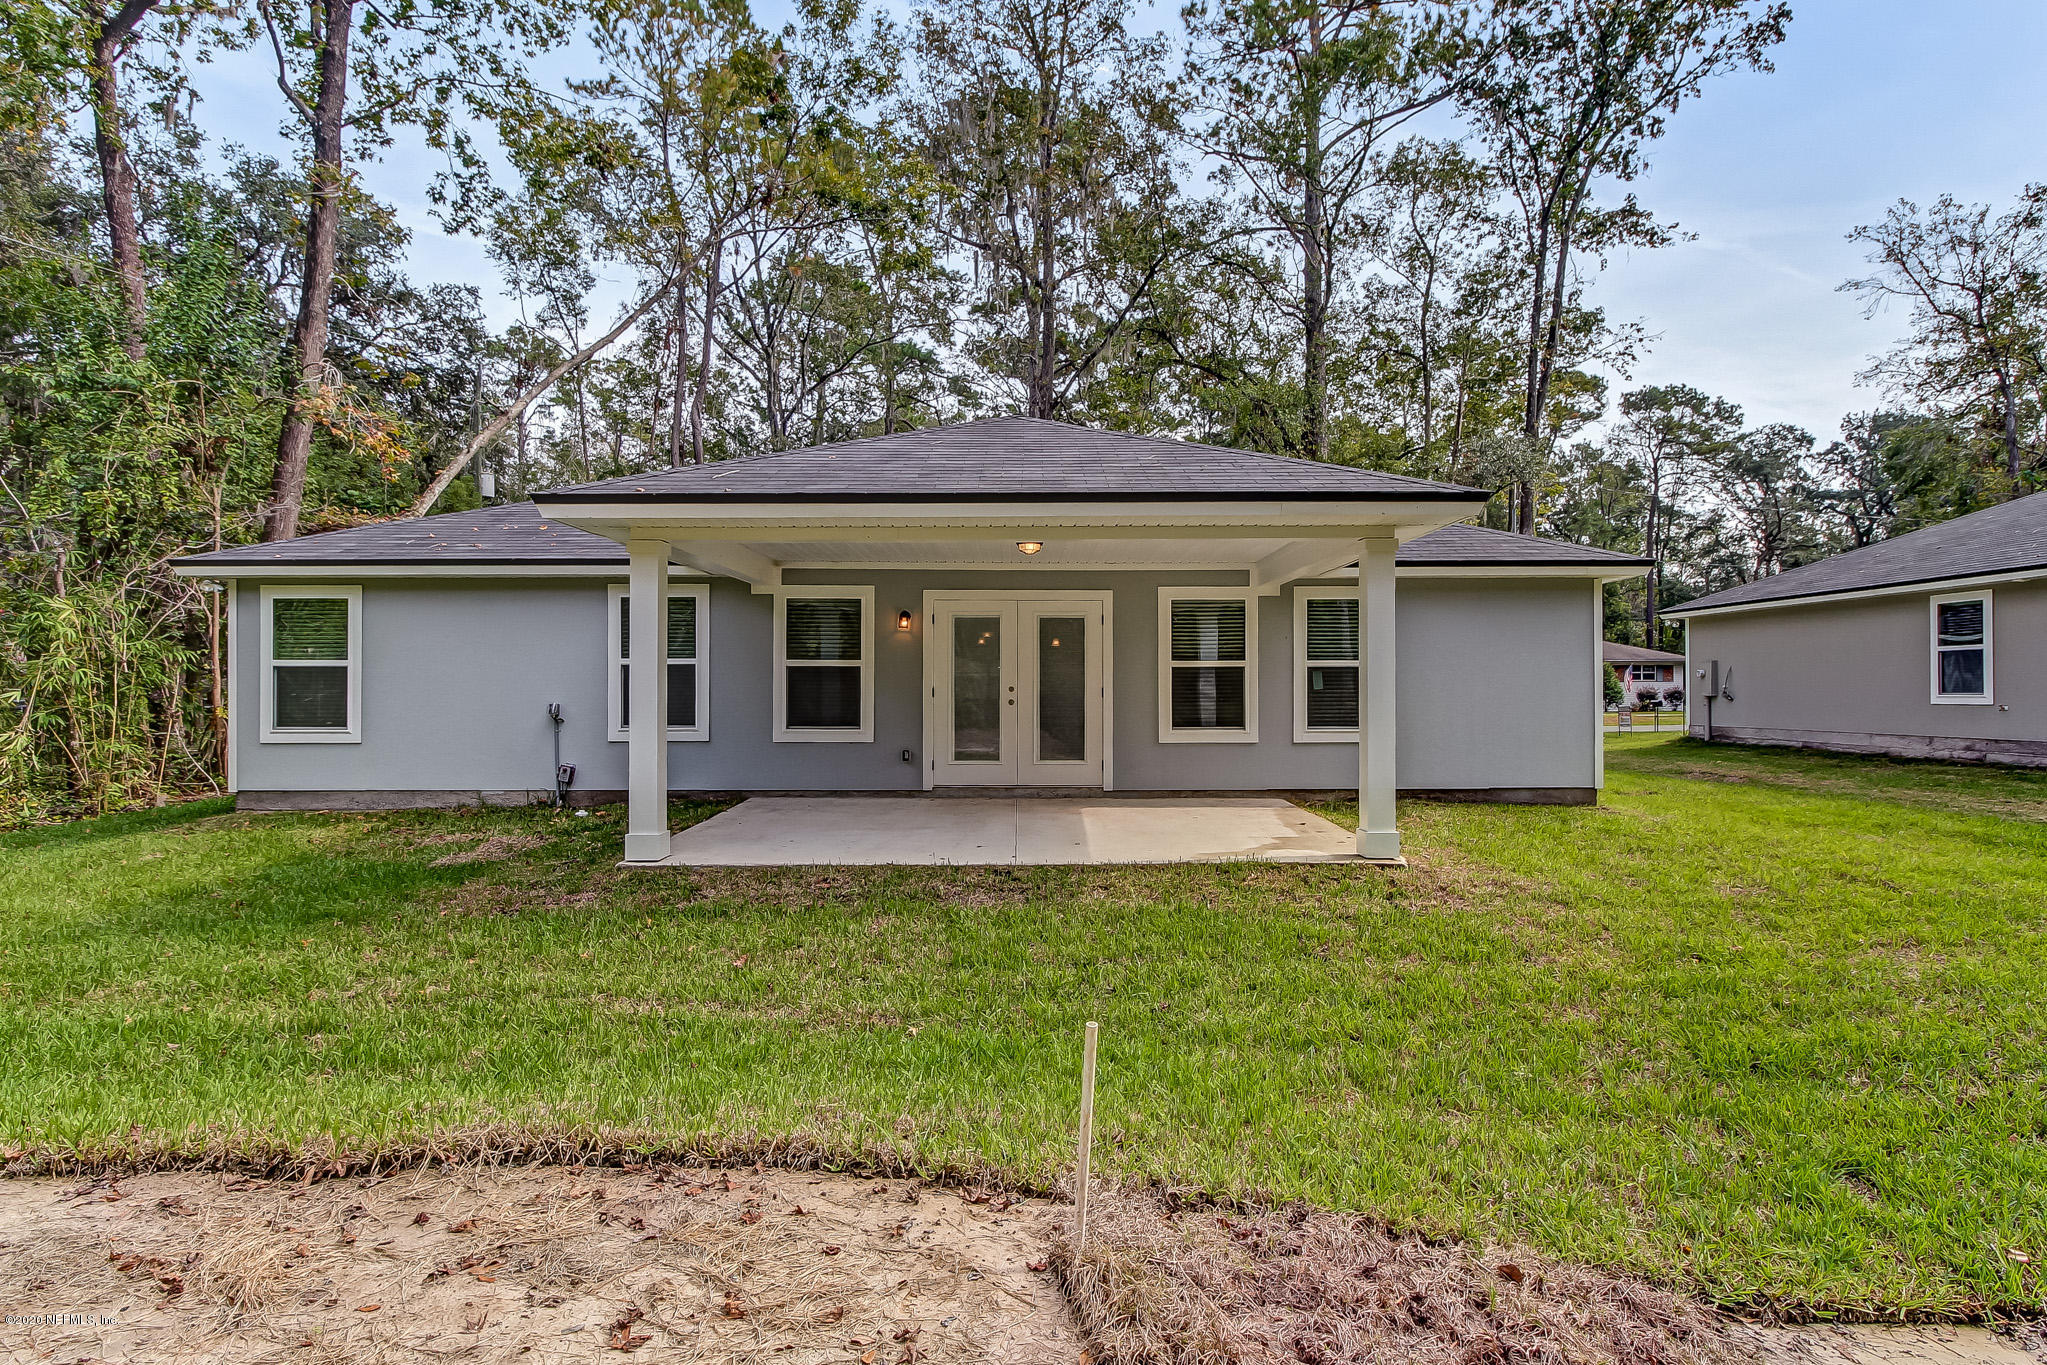 1808 NAVAHO, JACKSONVILLE, FLORIDA 32210, 4 Bedrooms Bedrooms, ,2 BathroomsBathrooms,Rental,For Rent,NAVAHO,1083173